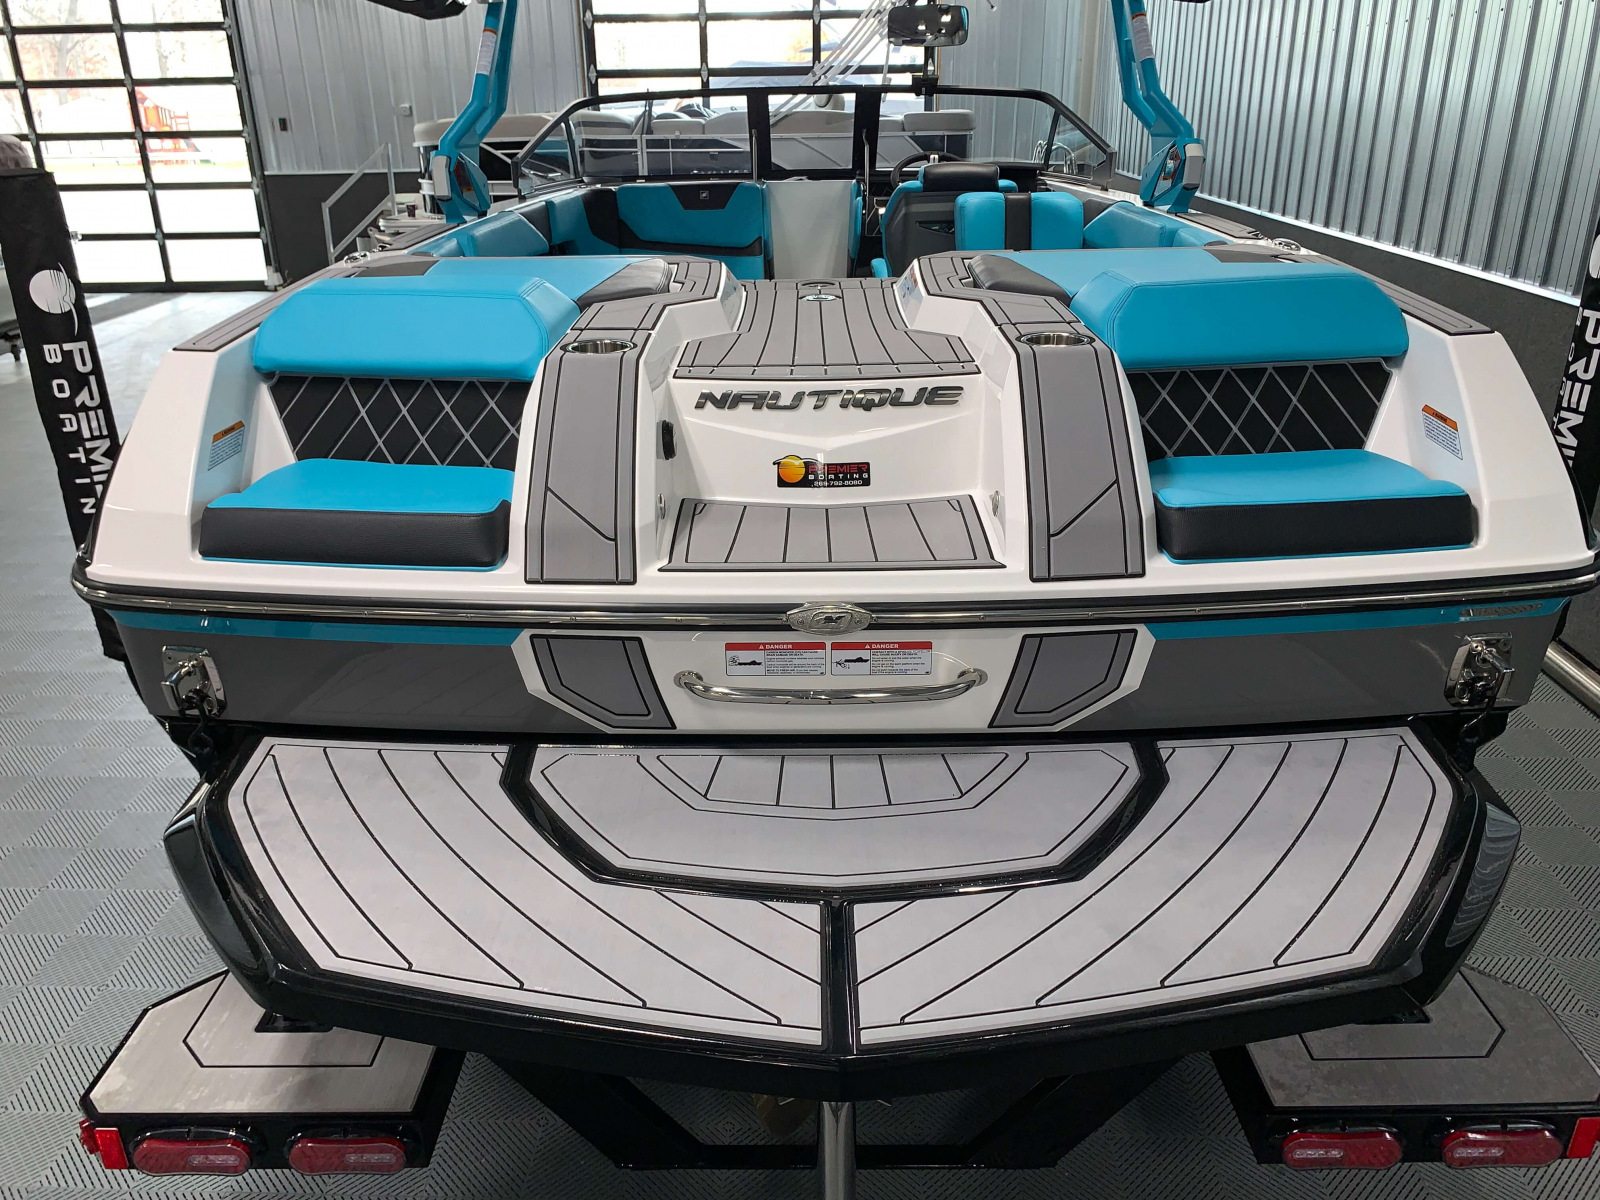 Transom Seats of the 2021 Nautique GS22 Wake Boat